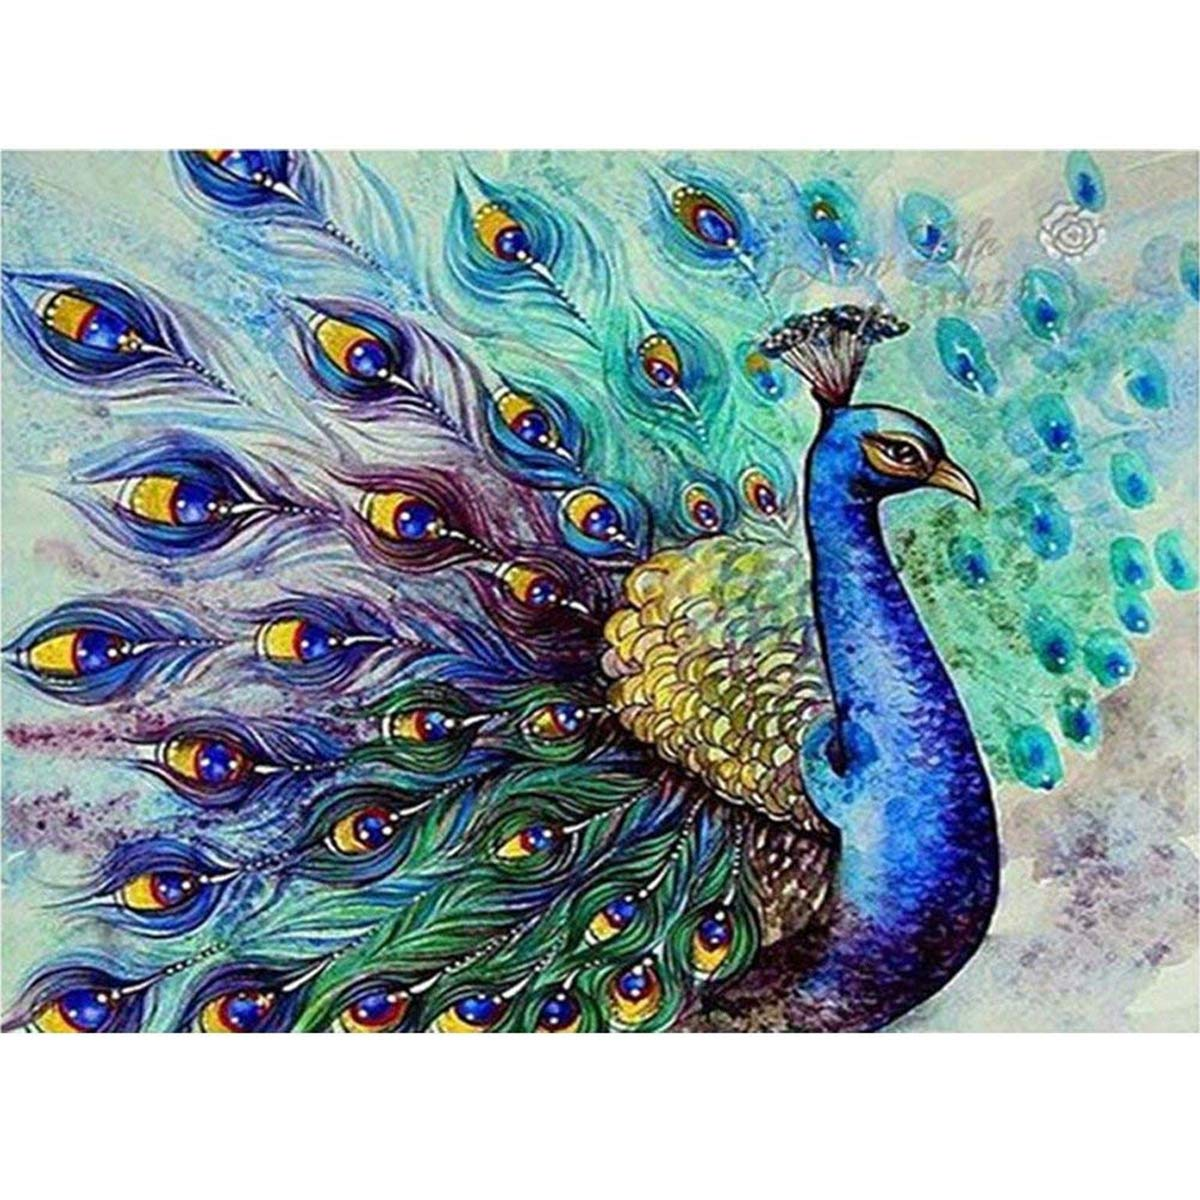 DIY 5D Diamond Painting Kit, Peacock Opening Crystal Drill Rhinestone Embroidery Cross Stitch Supply Arts Craft Canvas Wall Decor 11.8x15.8 inch AIRDEA